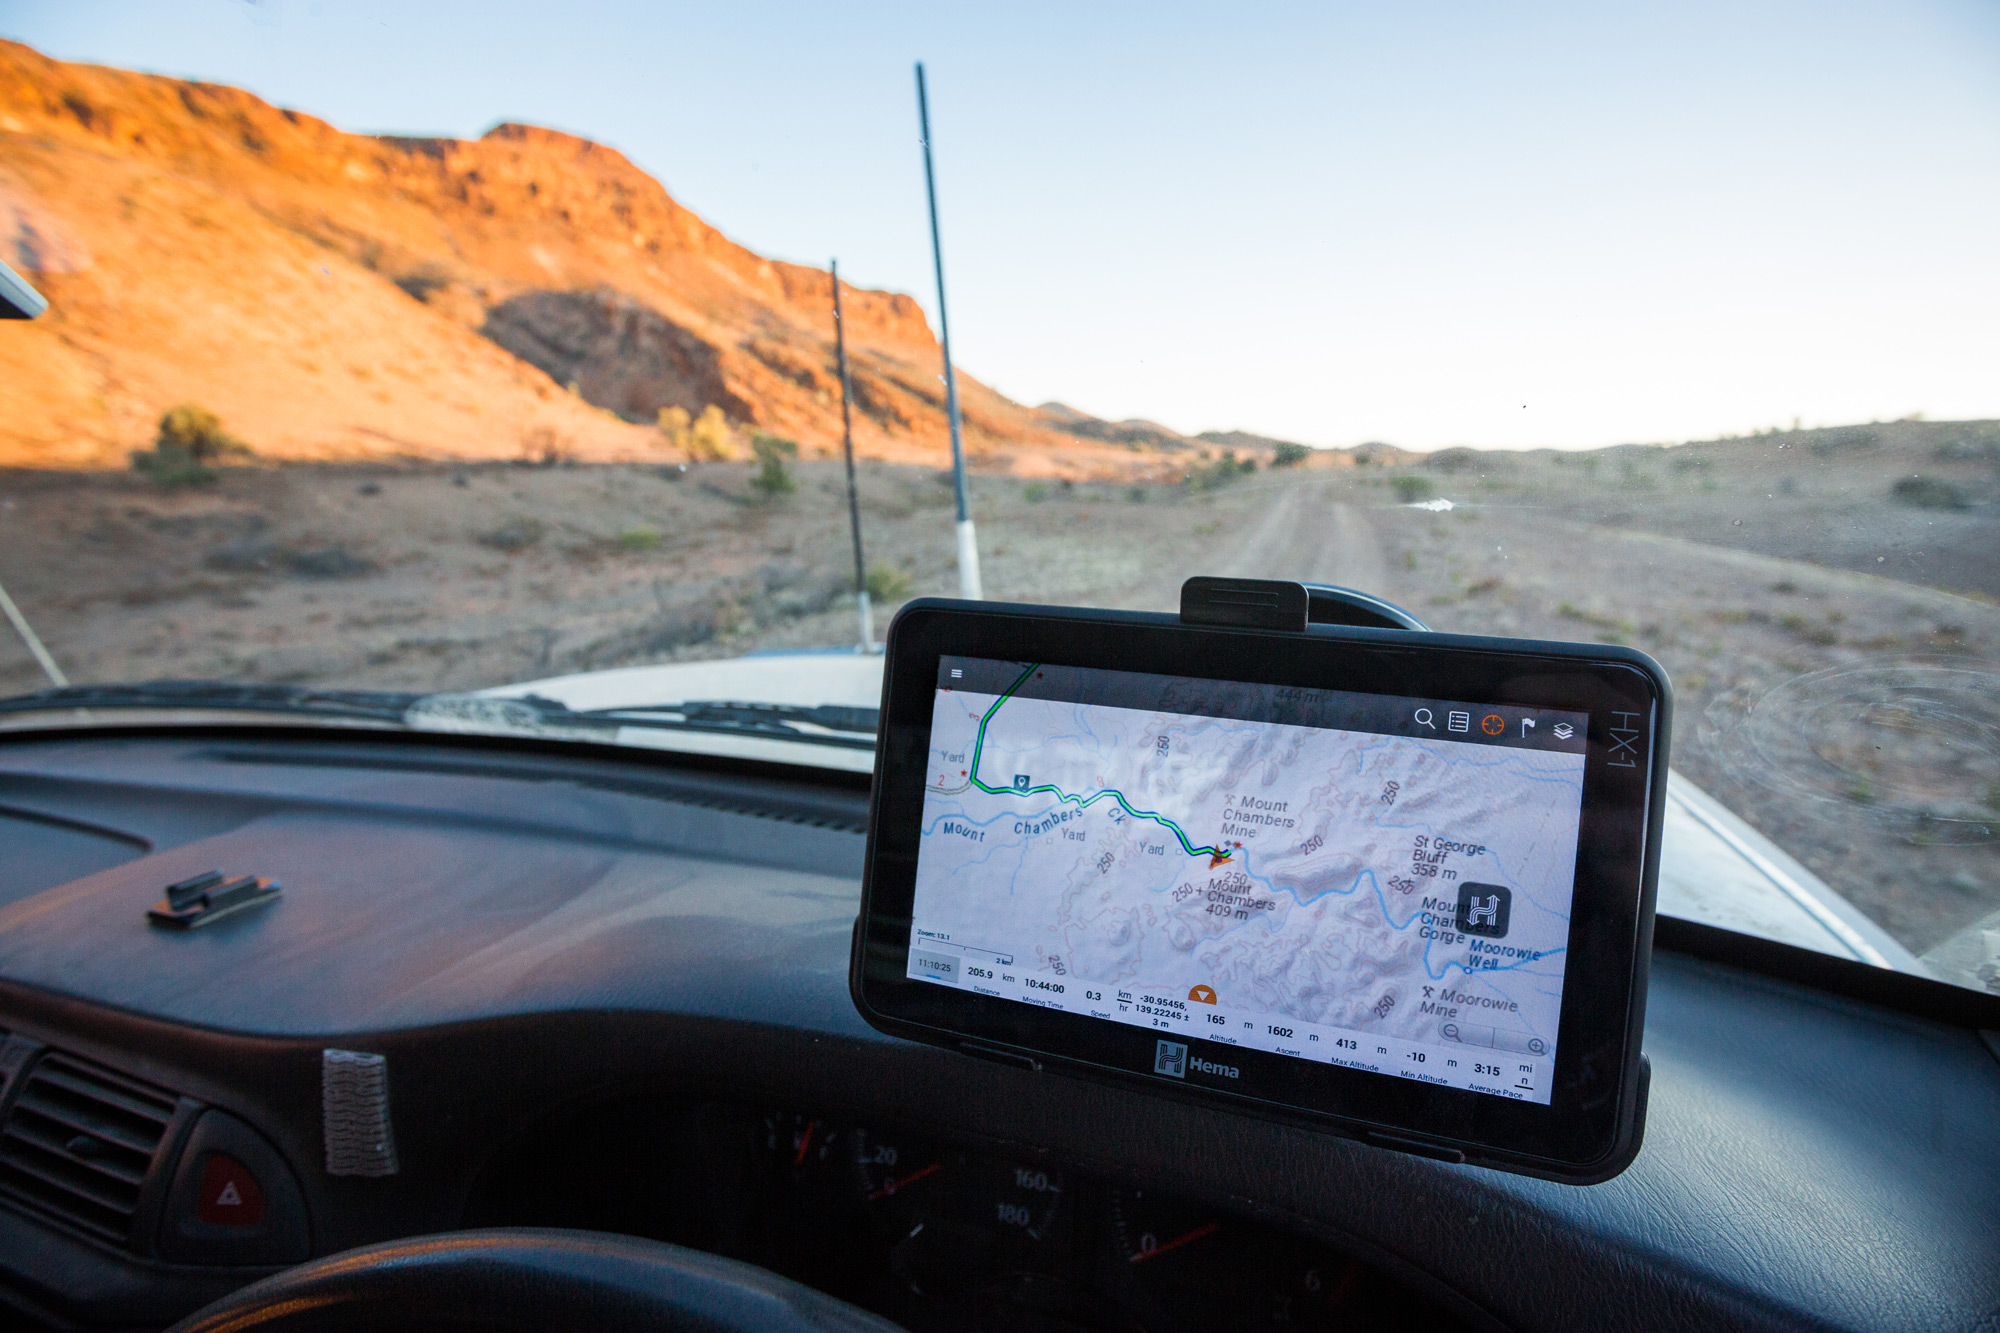 New Off-Road Mapping Available for HEMA HX-1